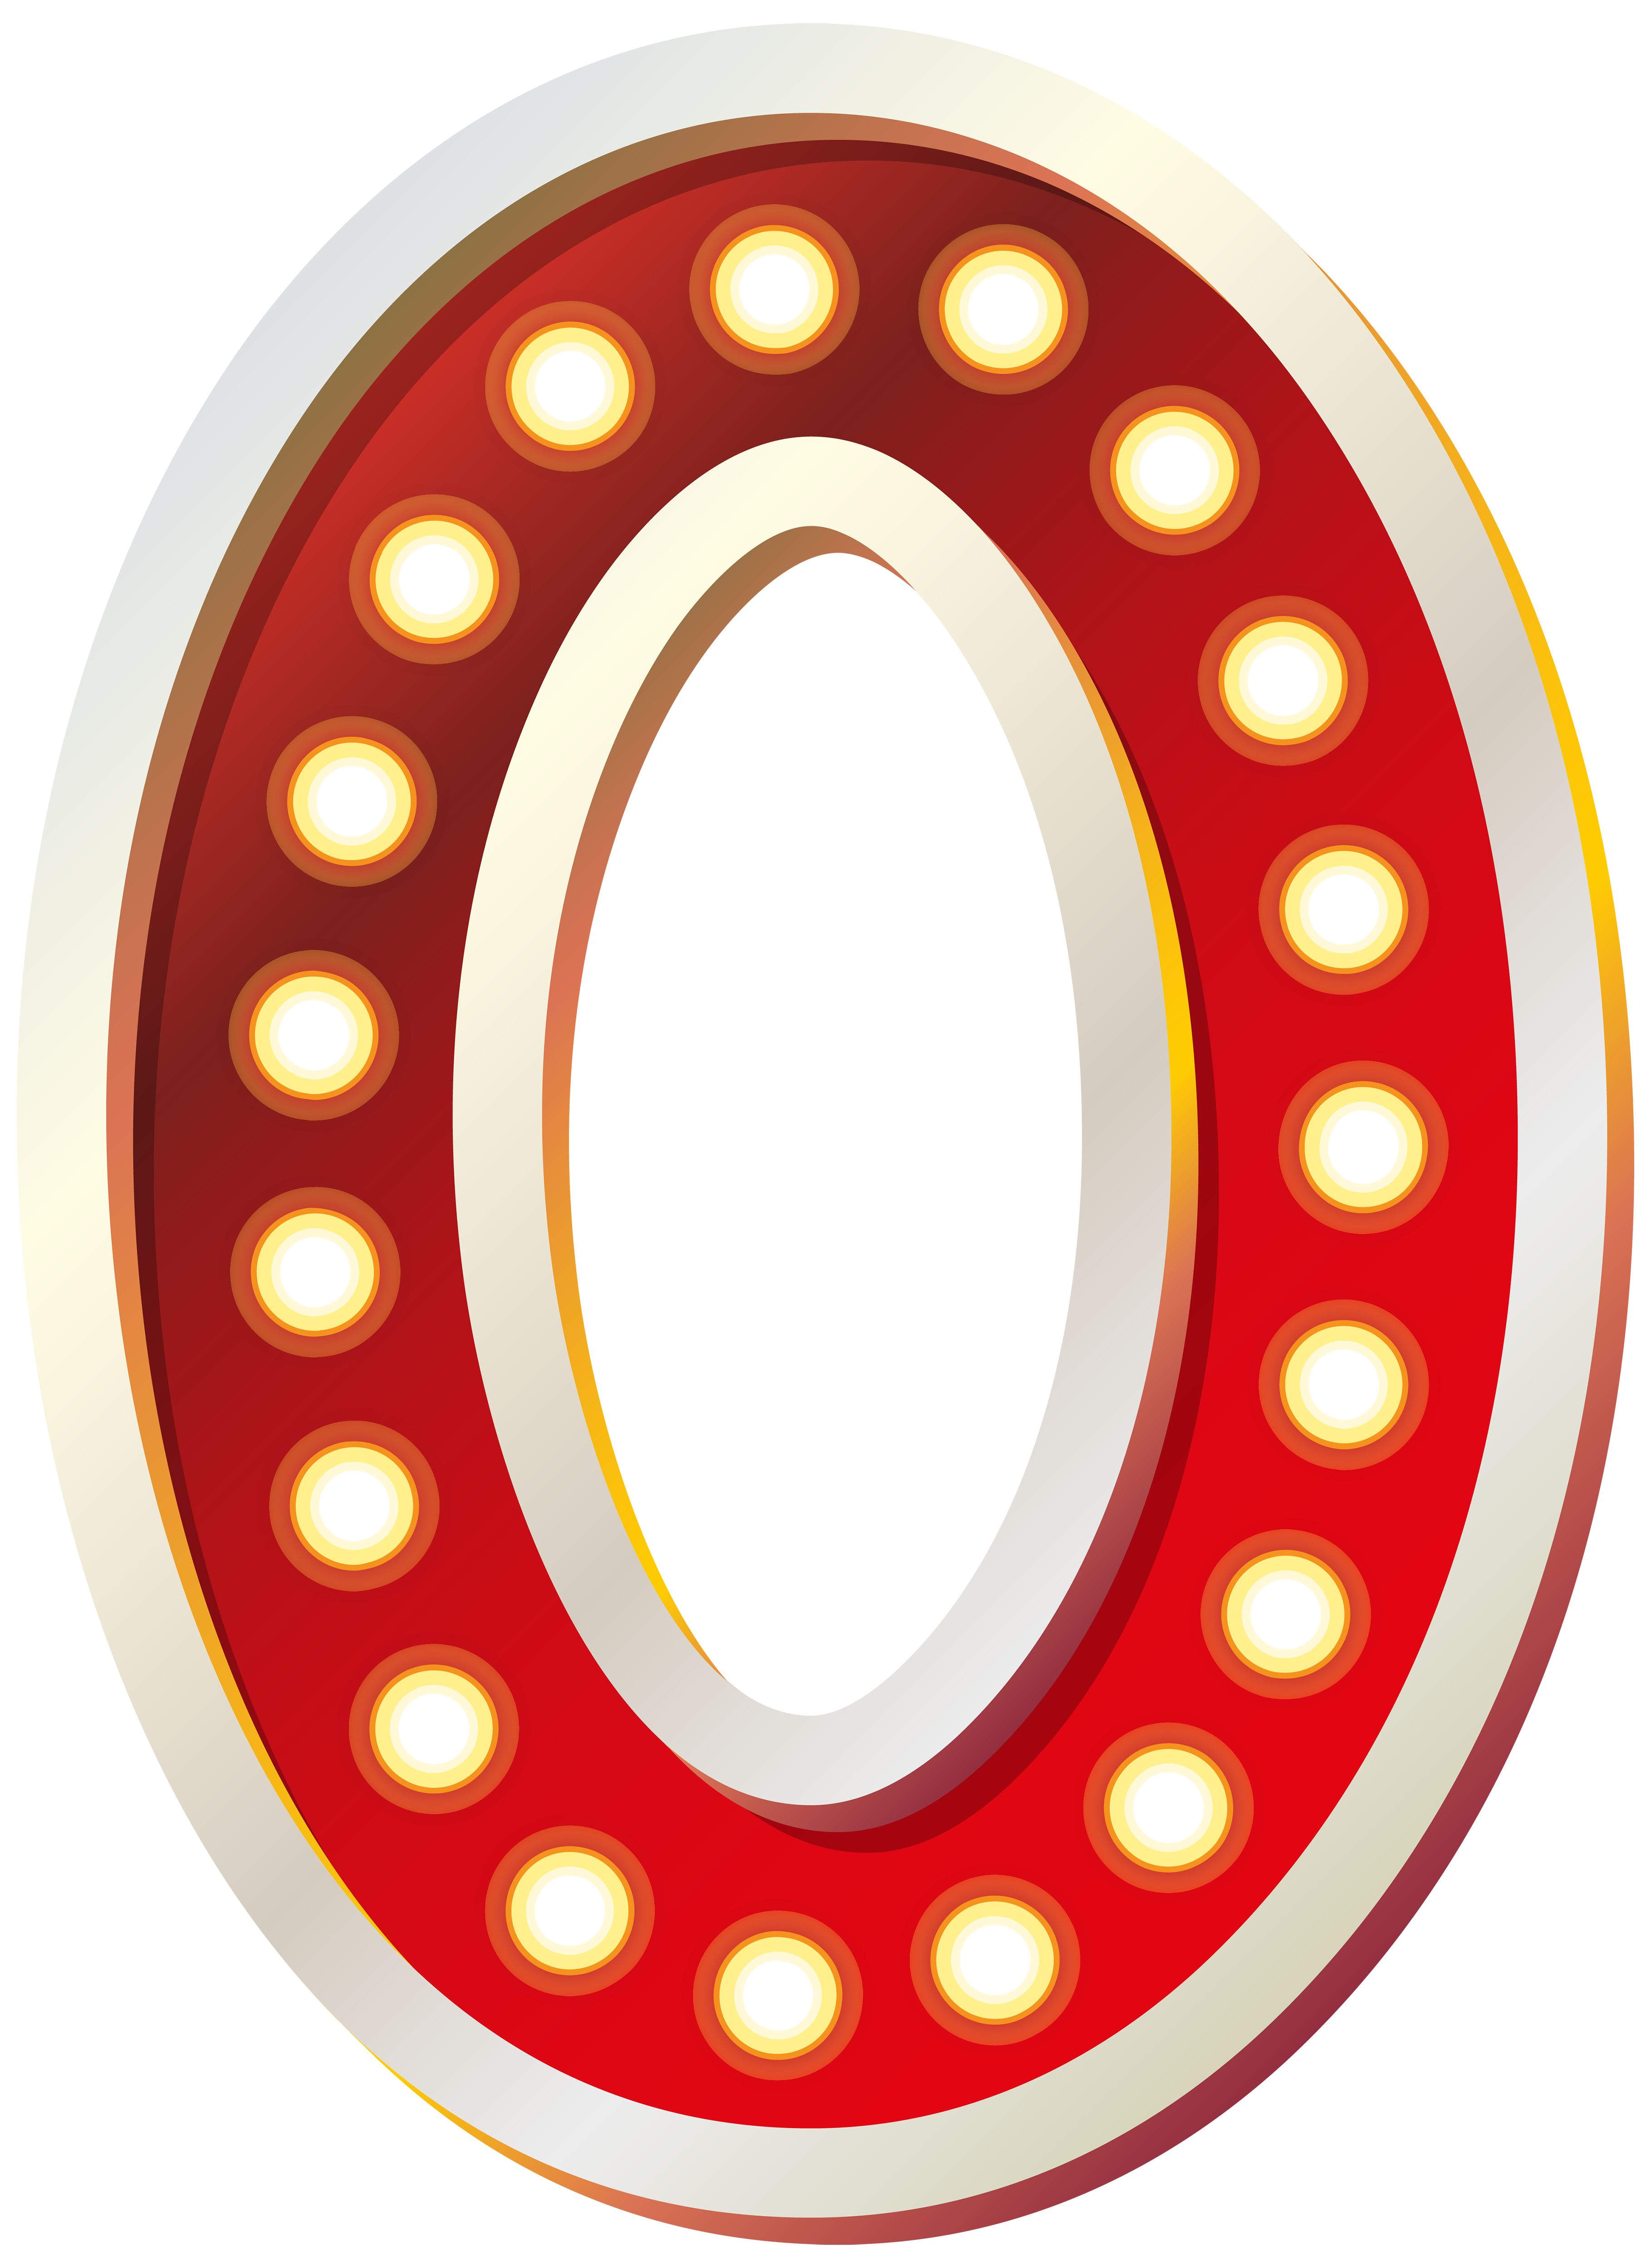 Red Number Zero with Lights PNG Clip Art Image.